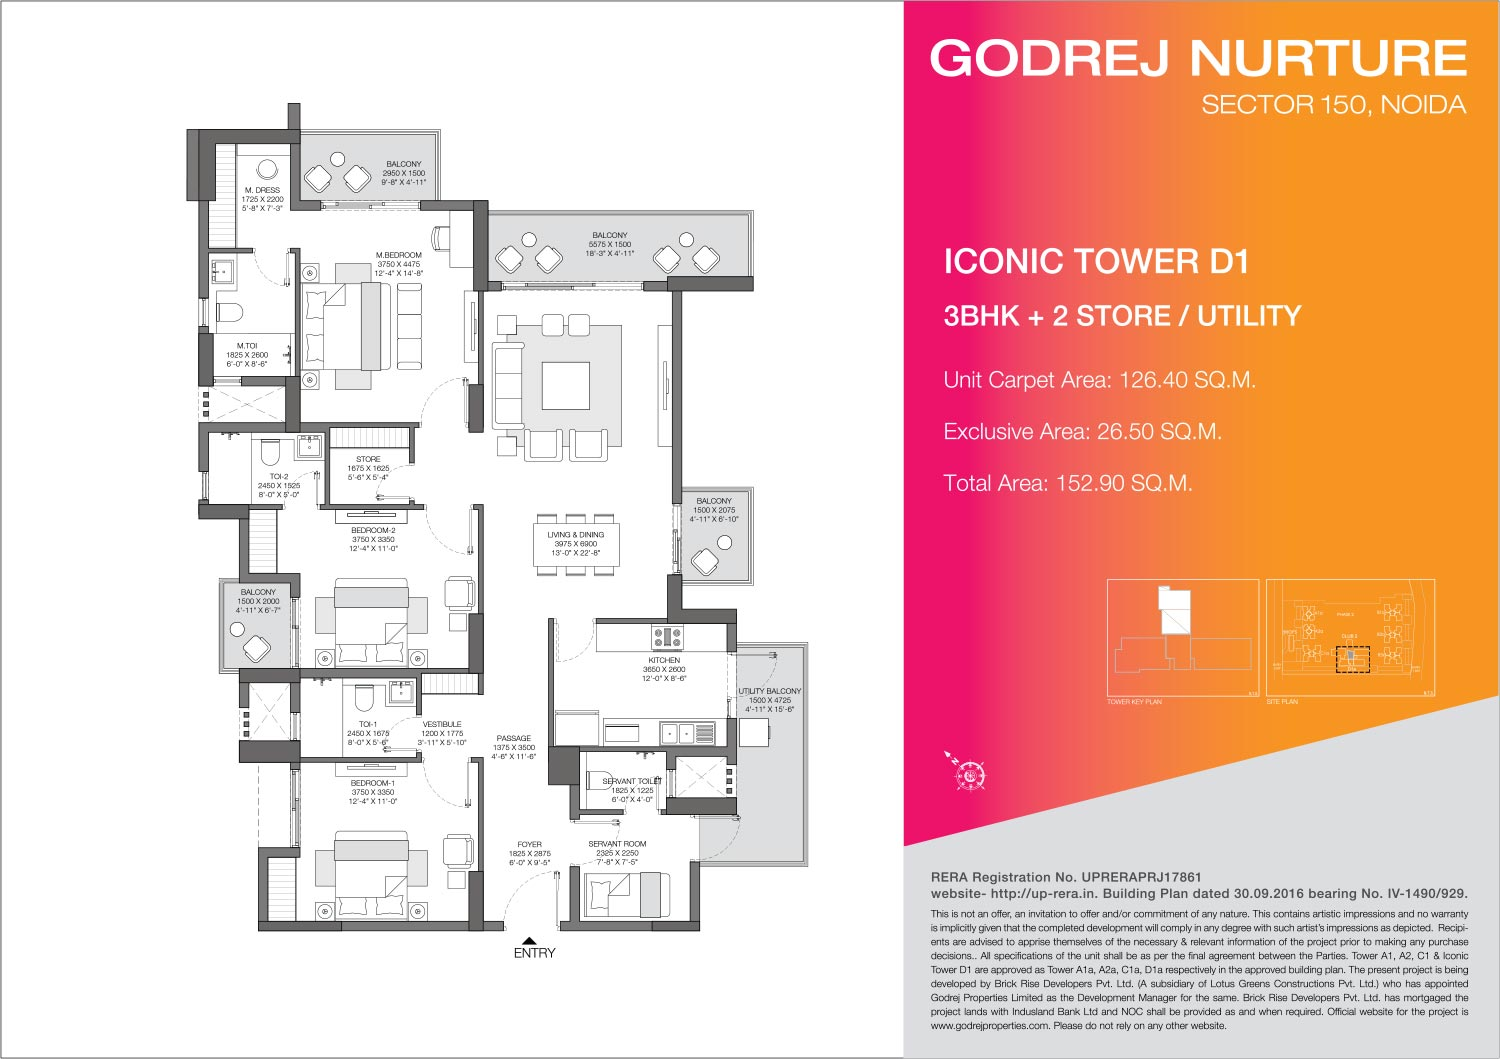 3 BHK + 2 Store/Utility - Iconic Tower D1